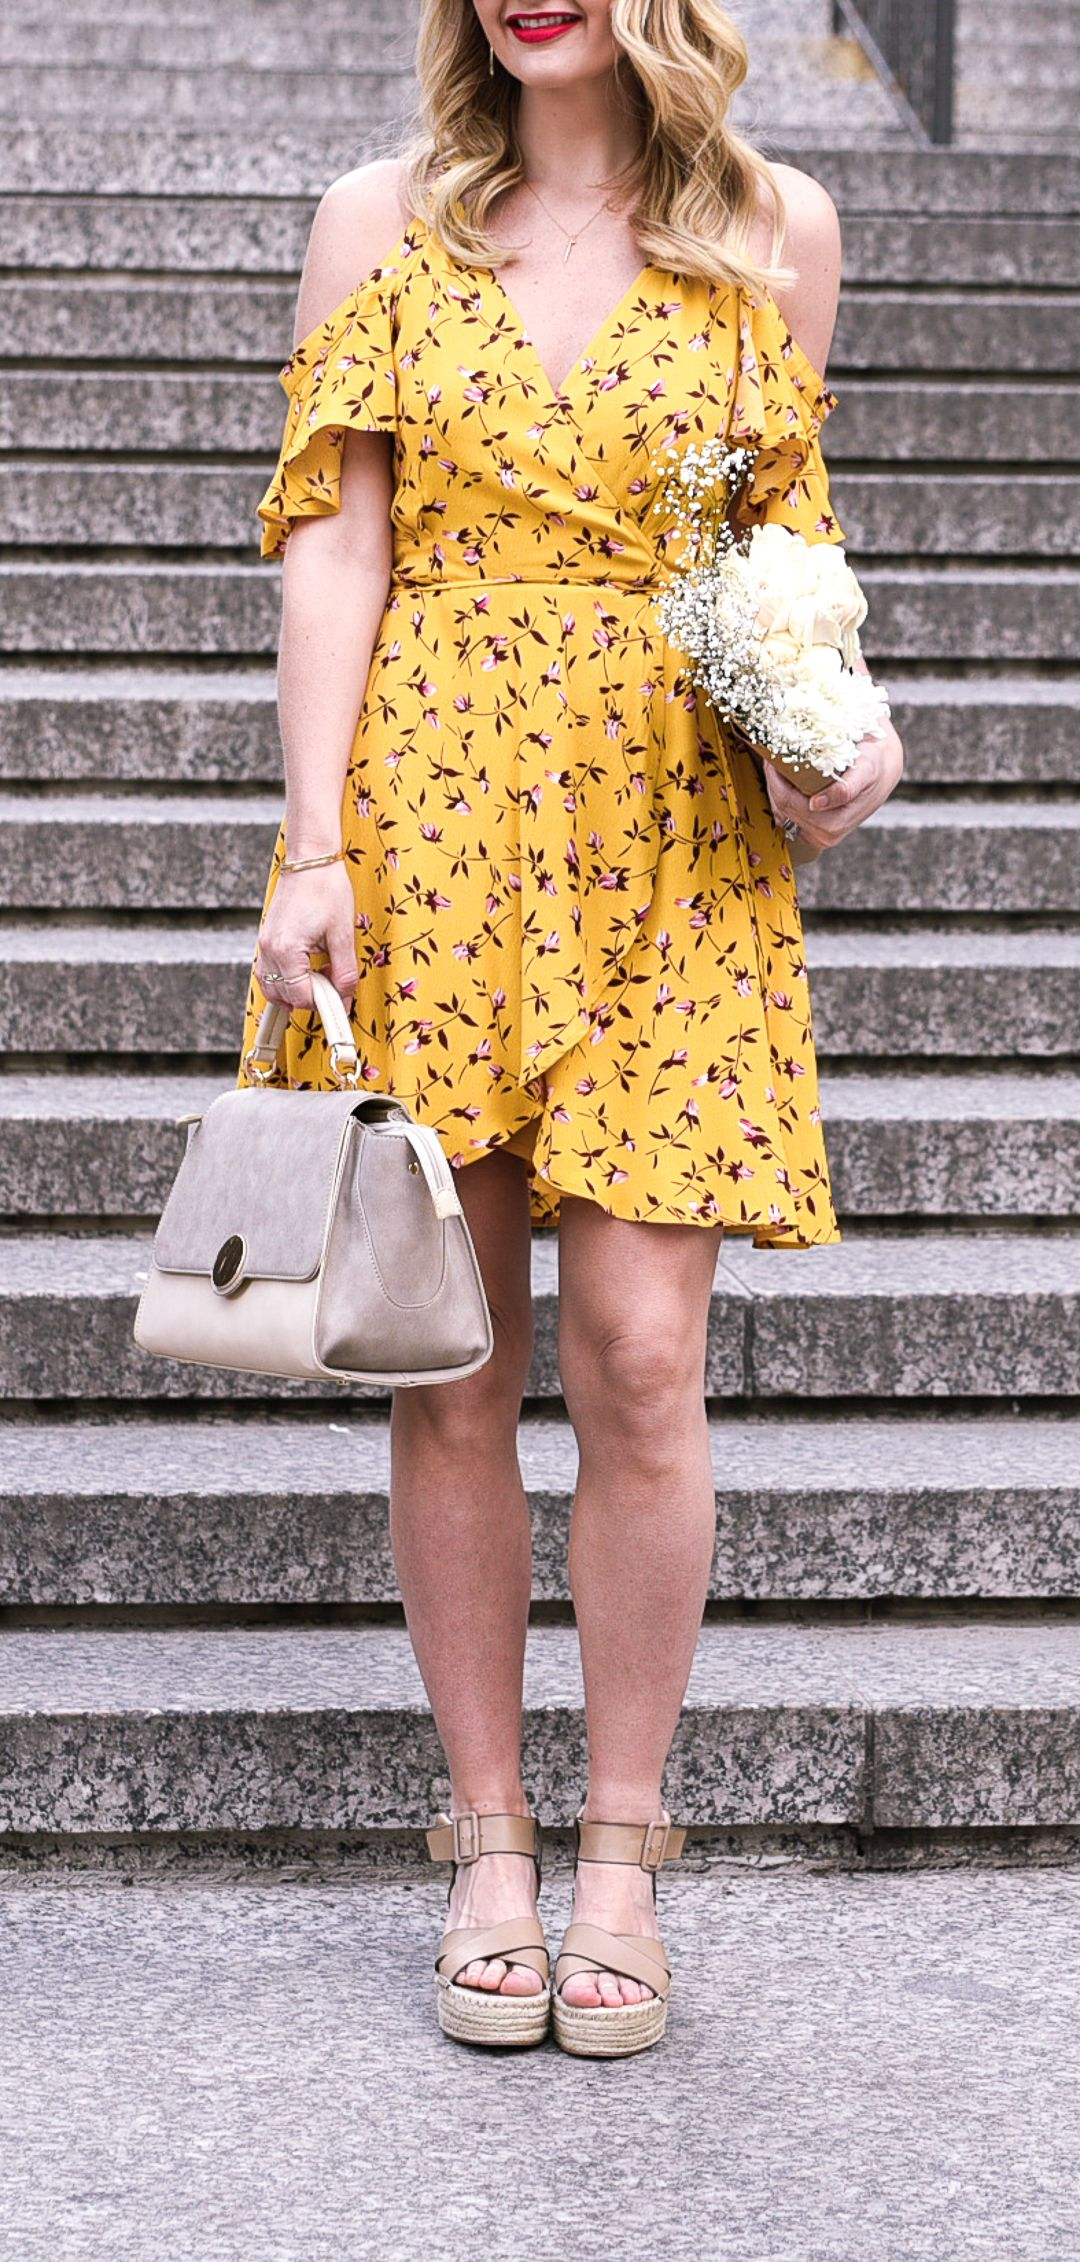 Mustard Yellow Floral Wrap Dress With Taupe Accessories Spring Style Summer Fashio Mustard Yellow Dresses Yellow Dress Summer Summer Fashion Dresses Casual [ 2262 x 1080 Pixel ]